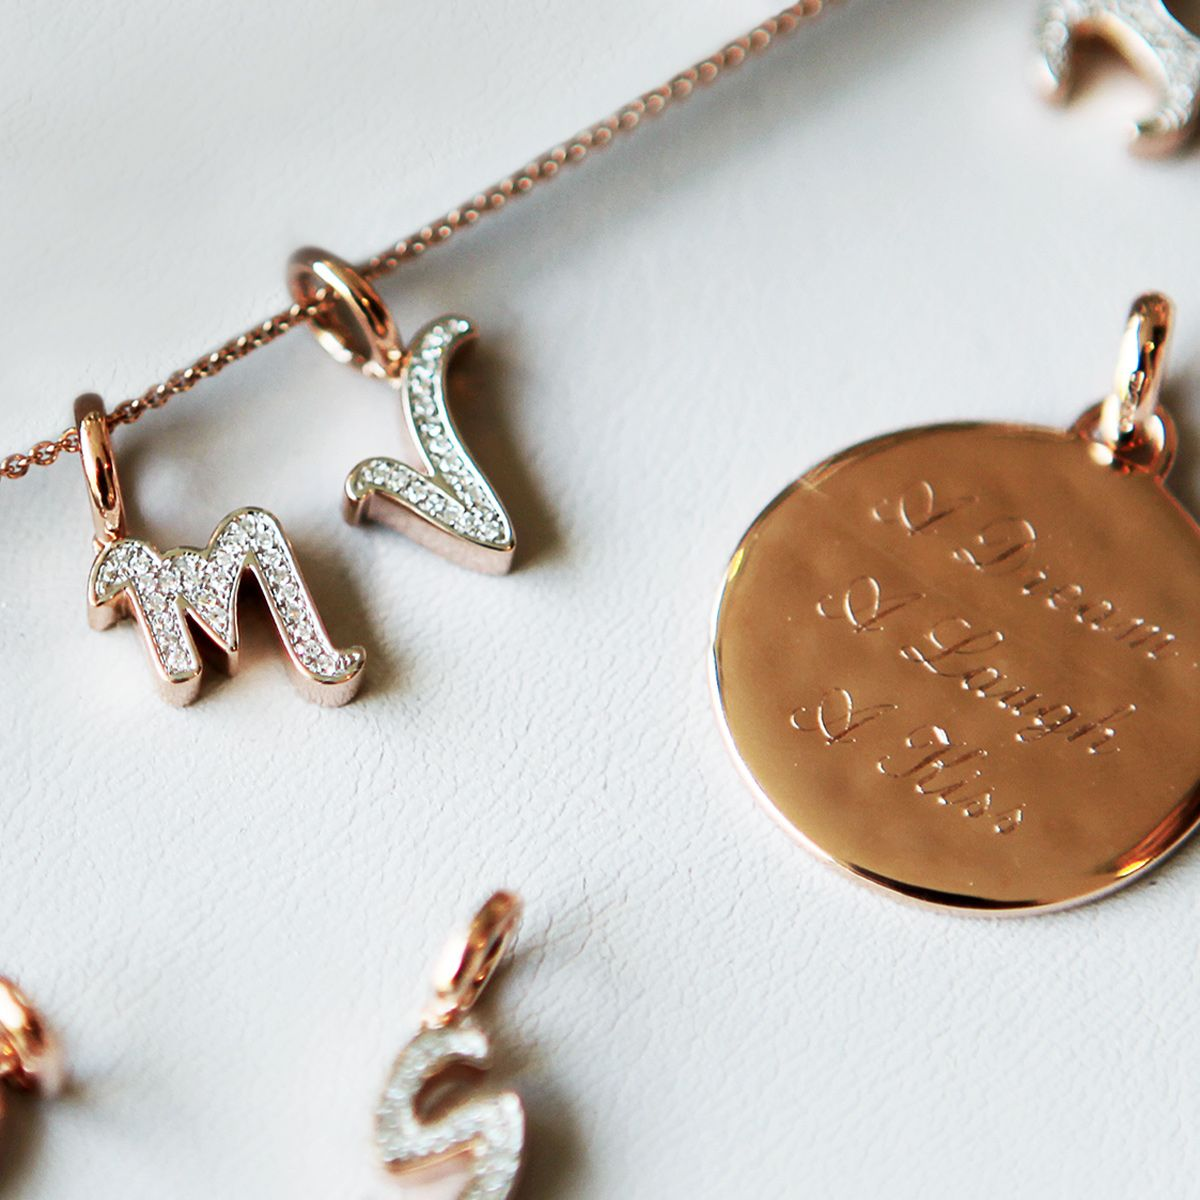 From initials to your favourite song lyrics. Make your #jewellery personal with our complimentary engraving service. #MonicaVinader